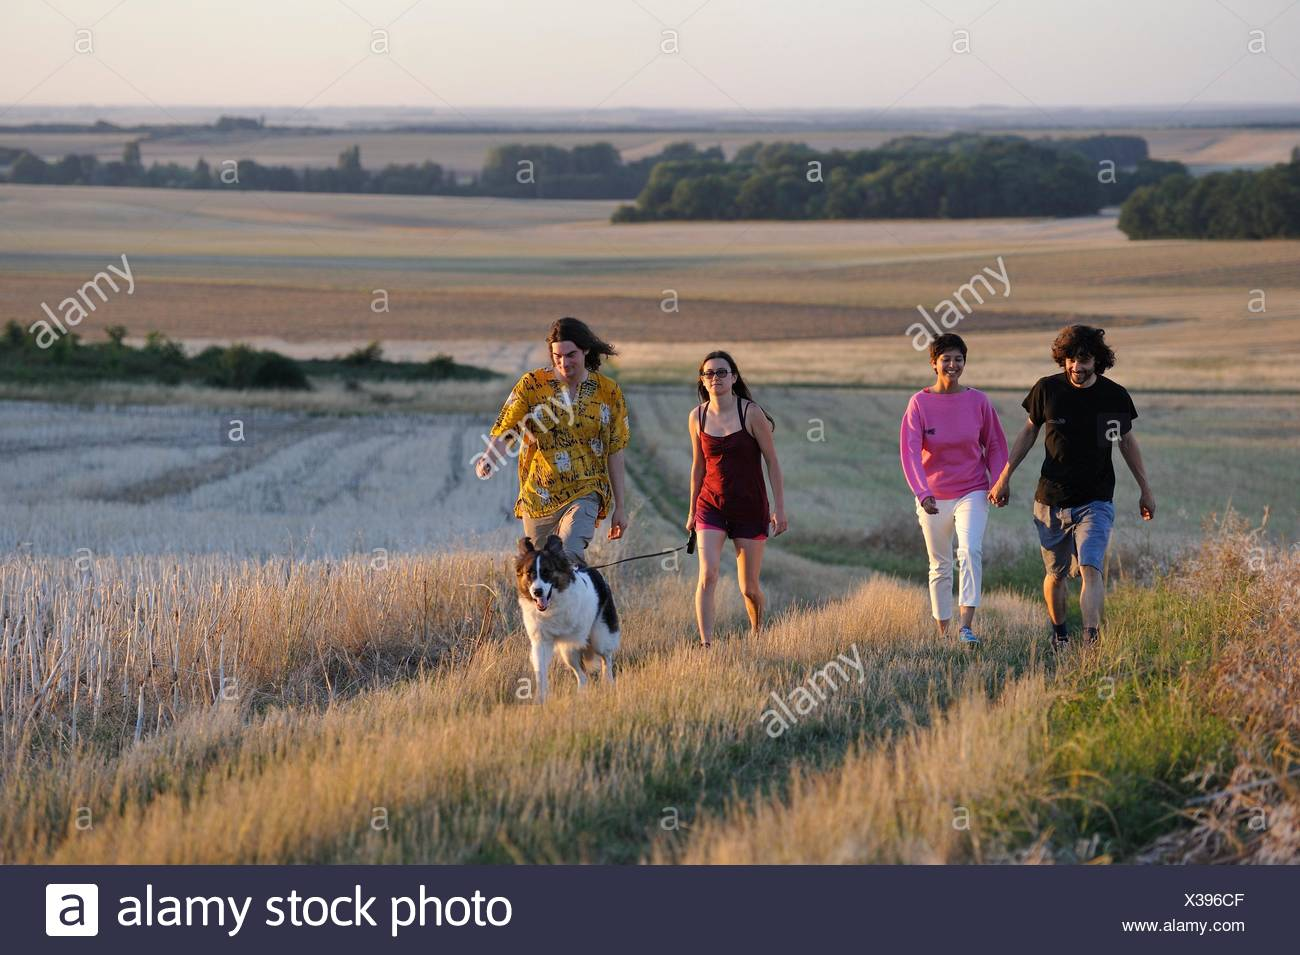 Young people walking around Mittainville, Yvelines department, Ile-de-France region, France, Europe. - Stock Image